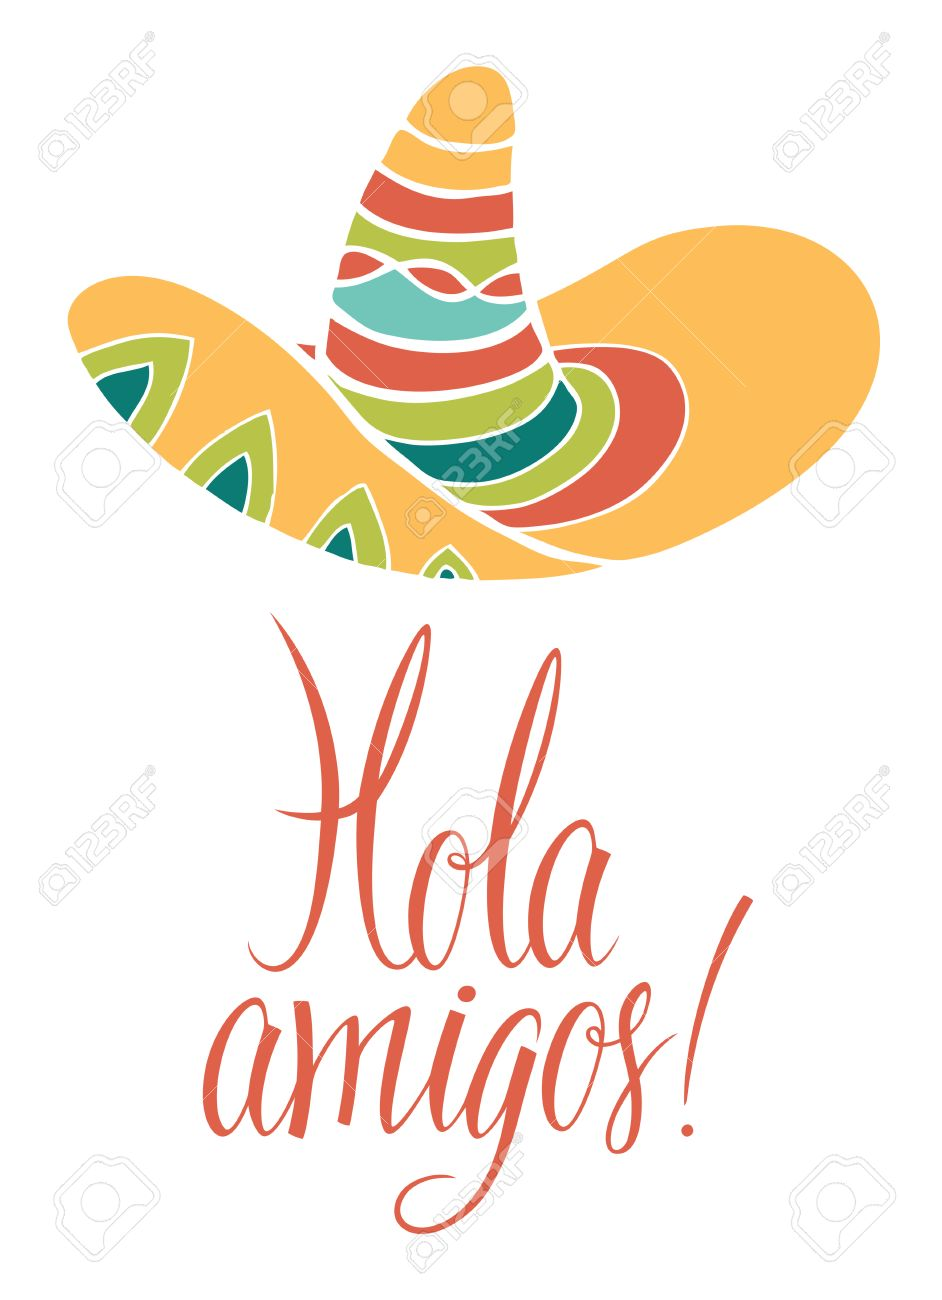 hight resolution of hola amigos design card with calligraphy stock vector 24621560